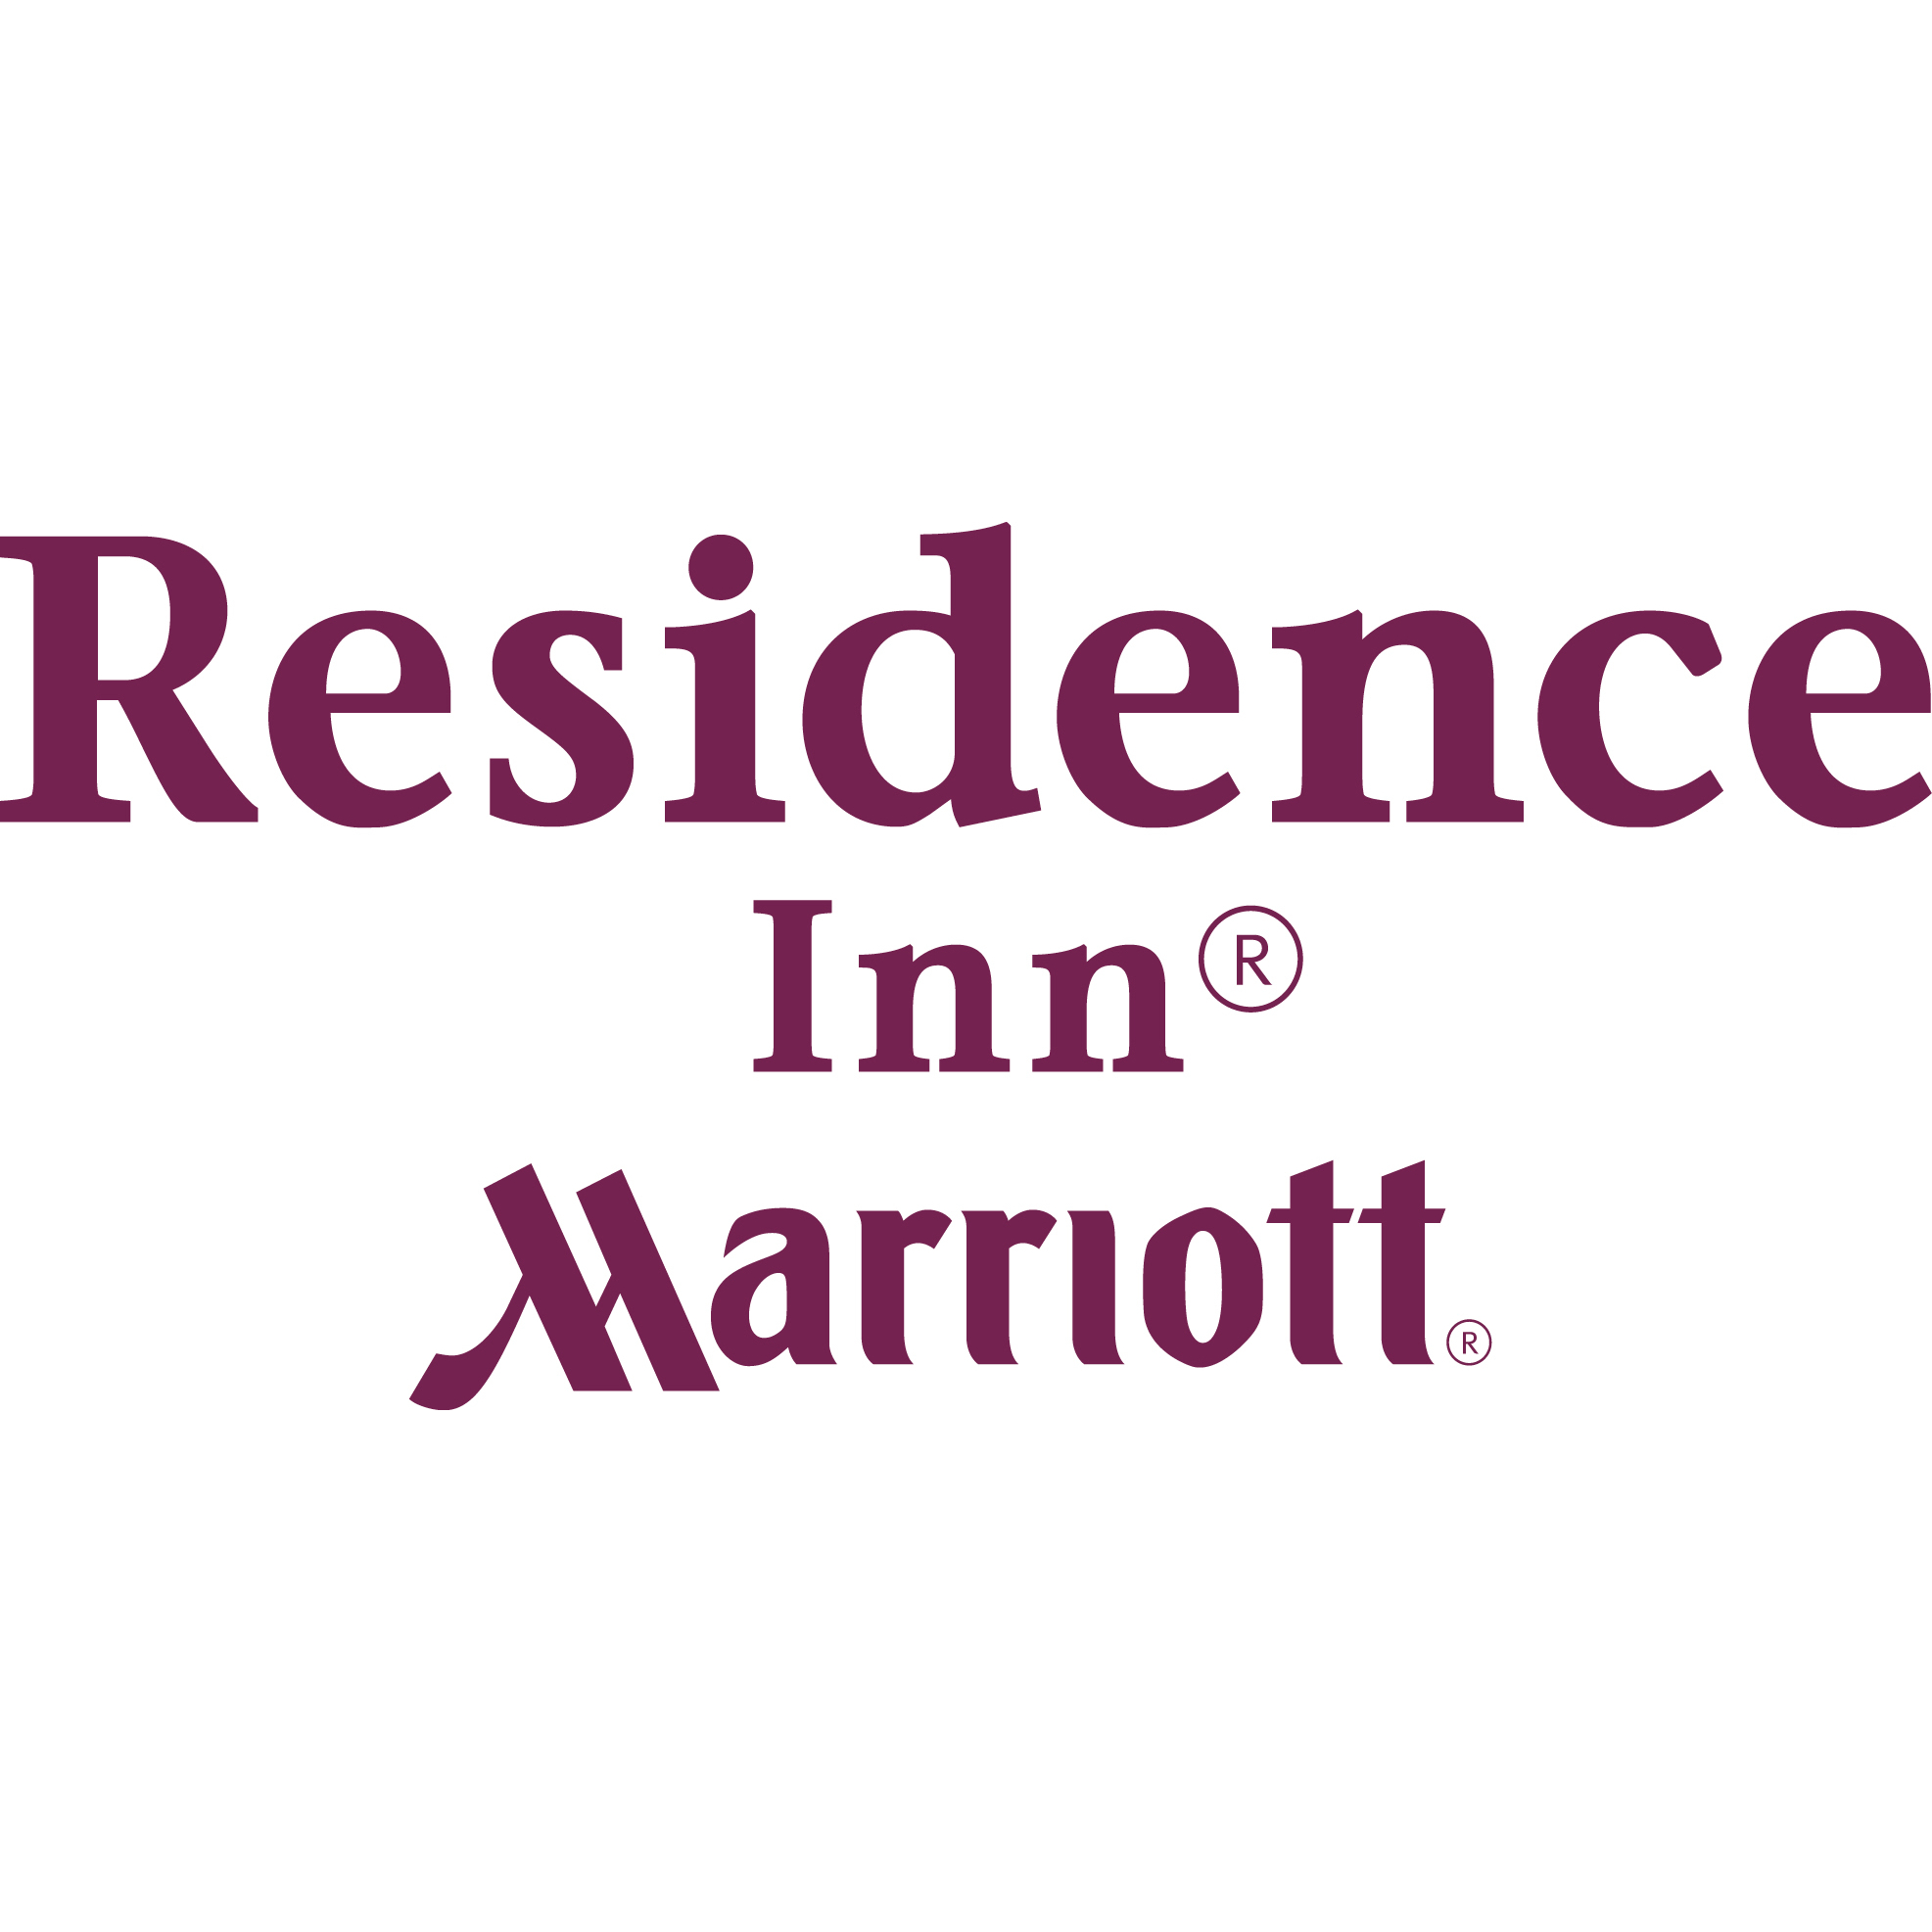 Residence Inn by Marriott Dallas Central Expressway image 17